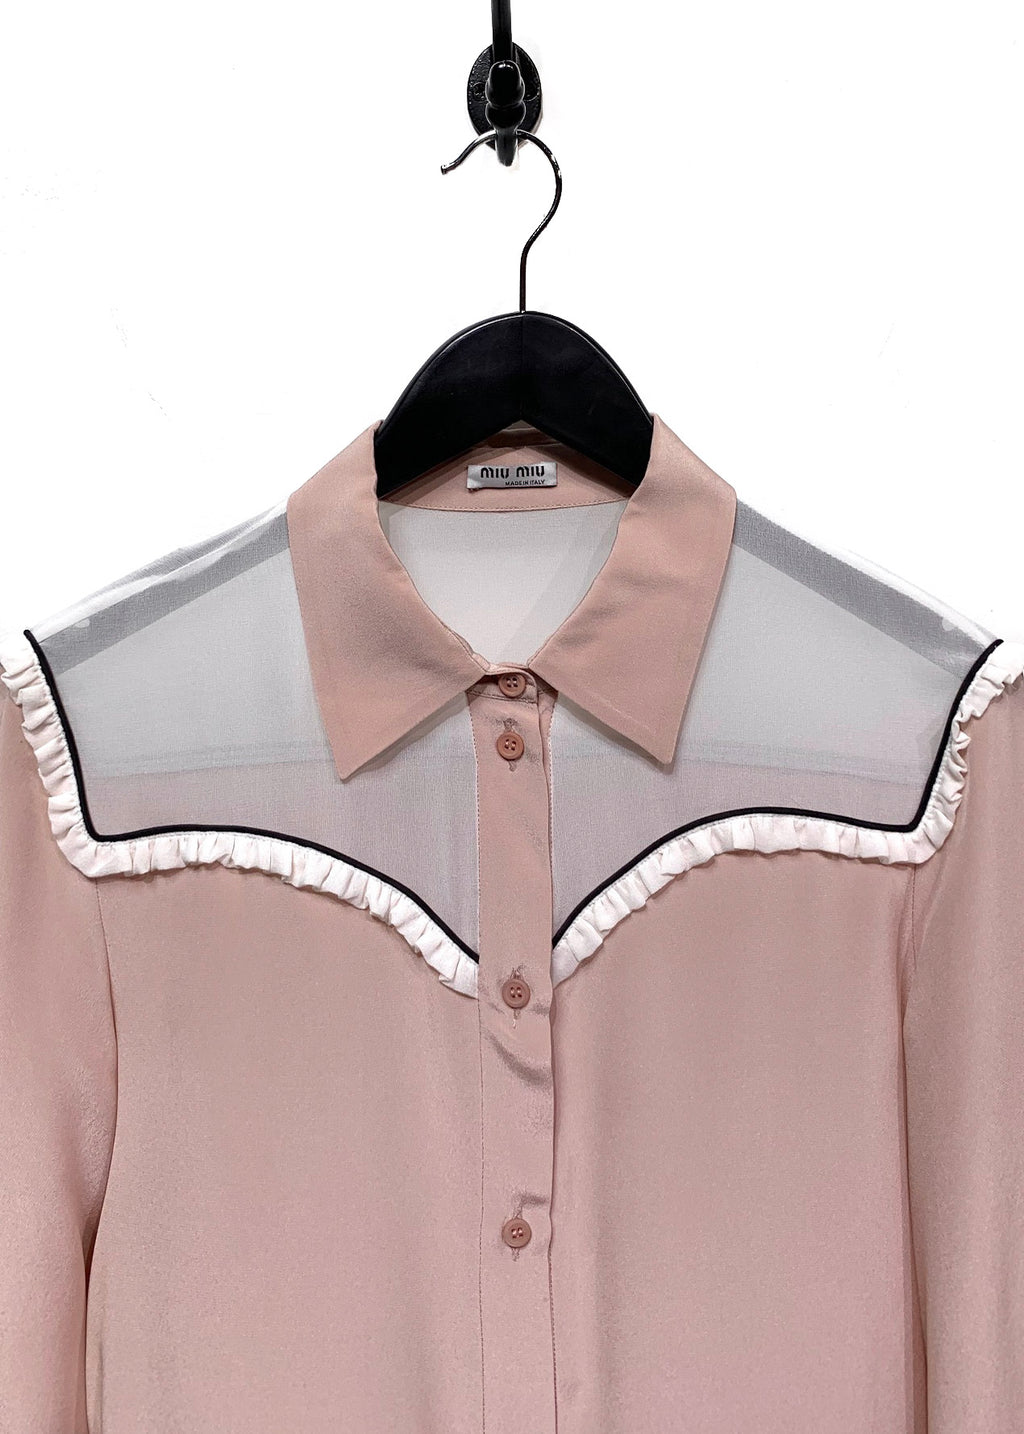 Miu Miu Dusty Pink Western Silk Button Shirt